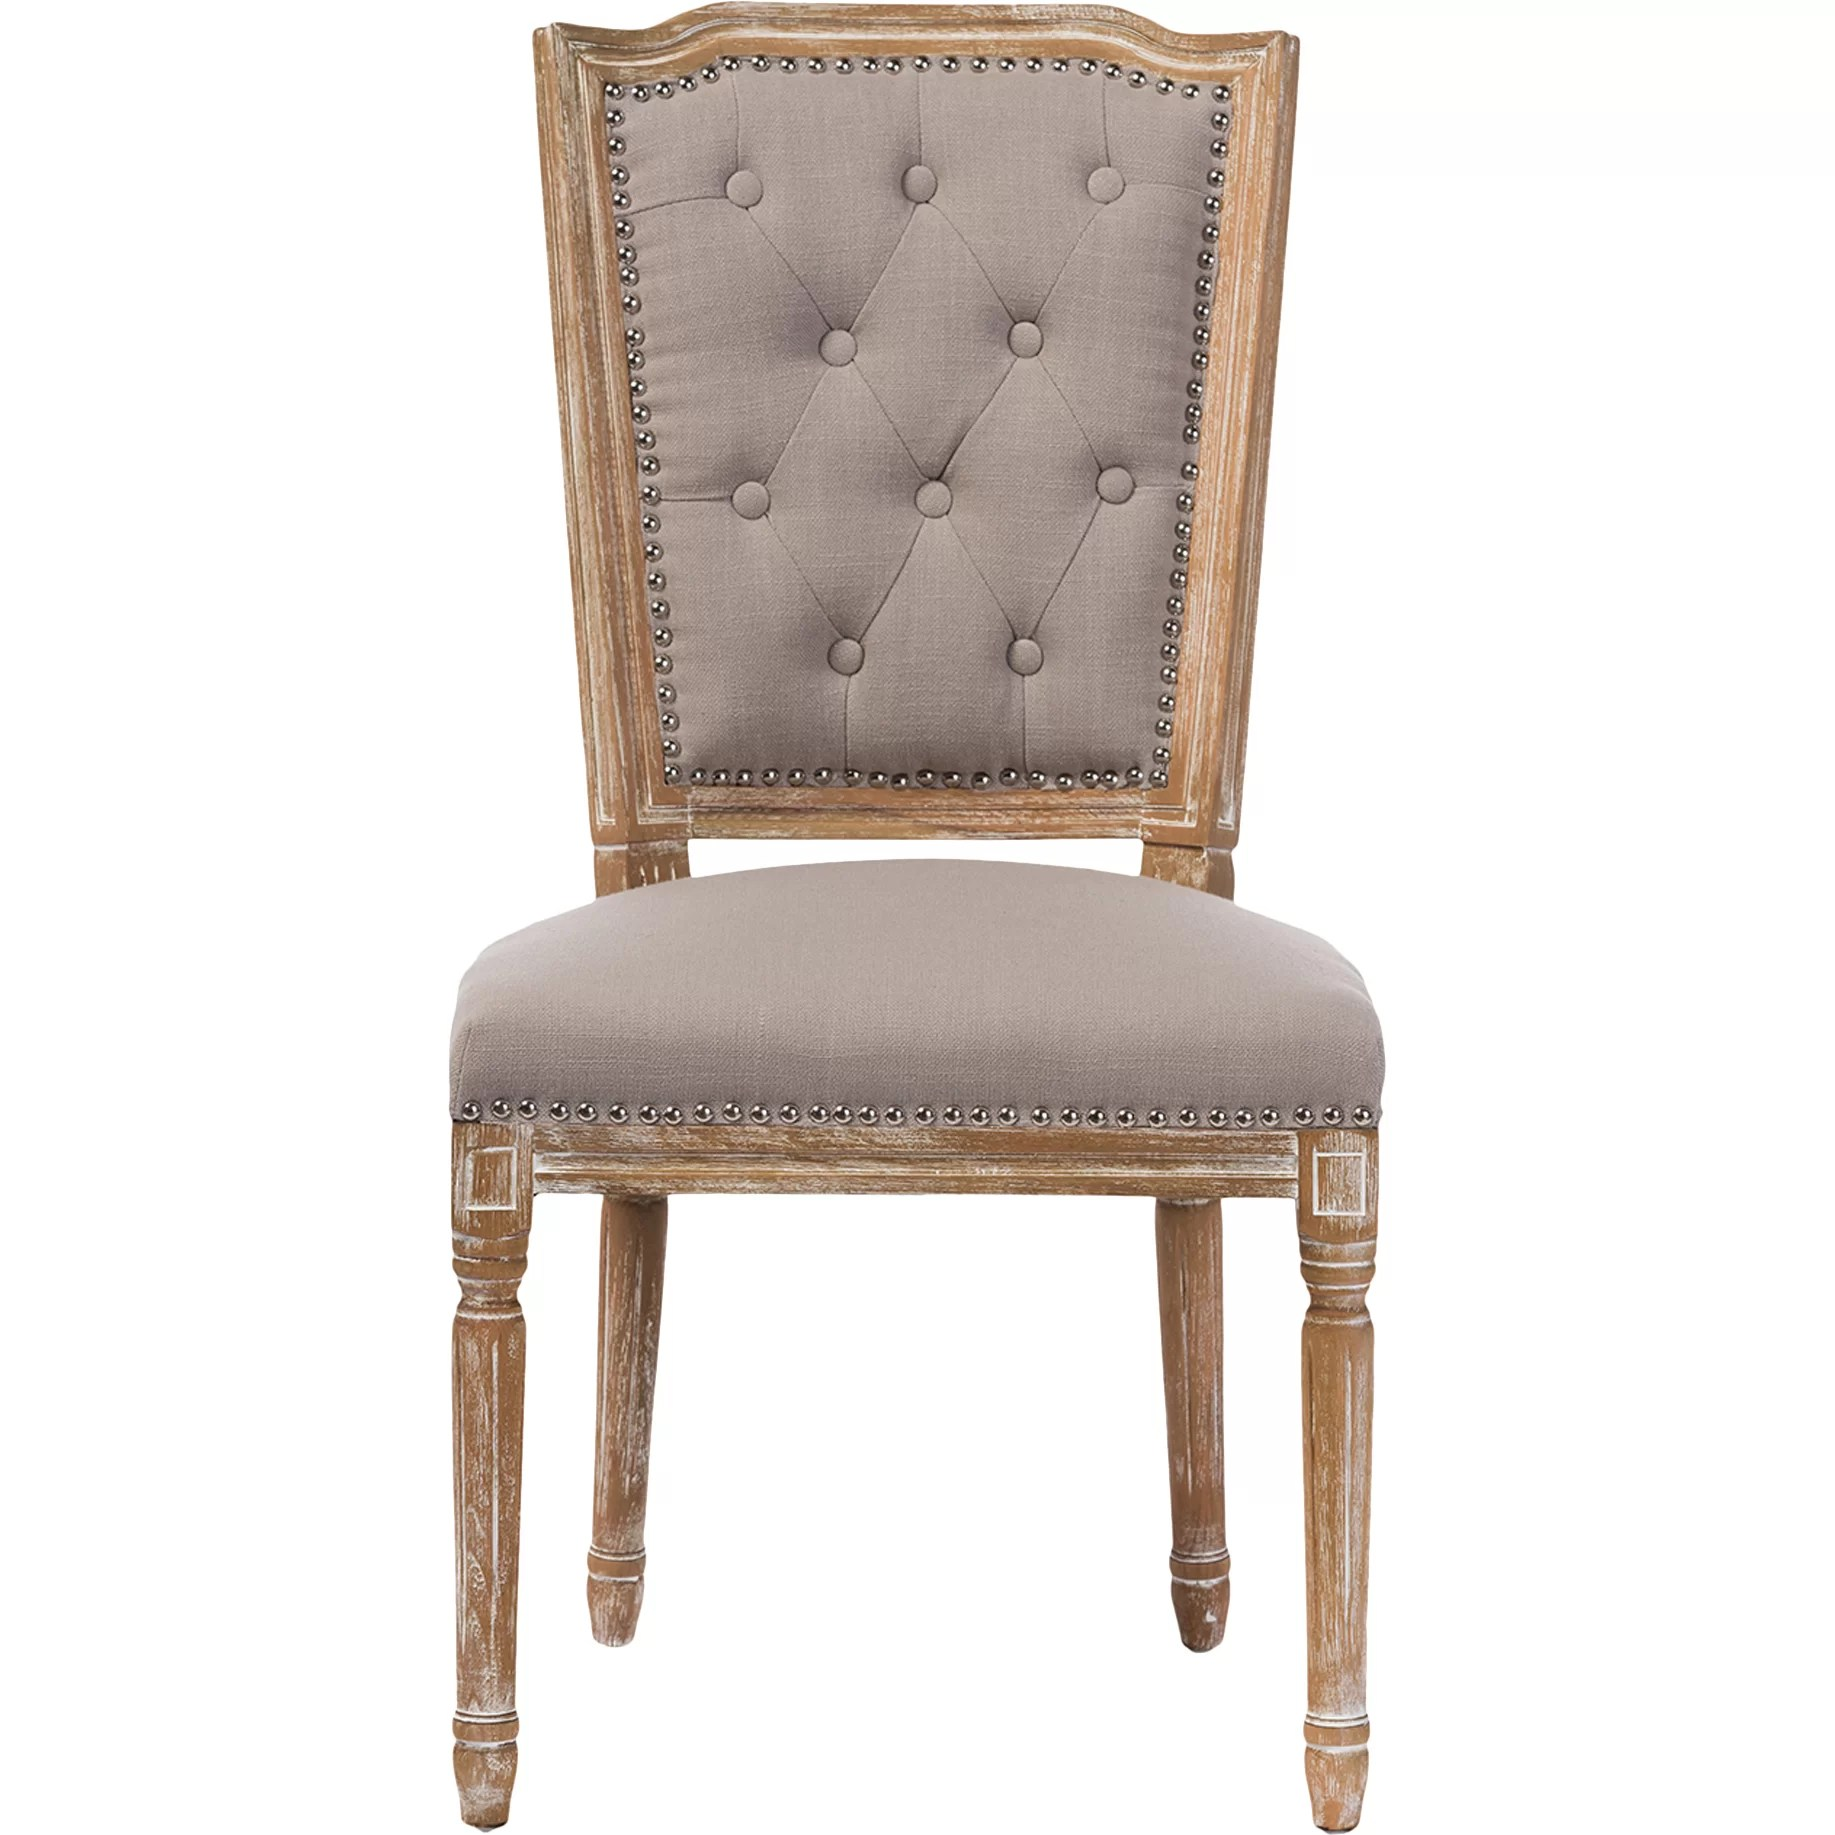 chairs in bulk morris chair cushions sale wholesale interiors baxton studio side and reviews